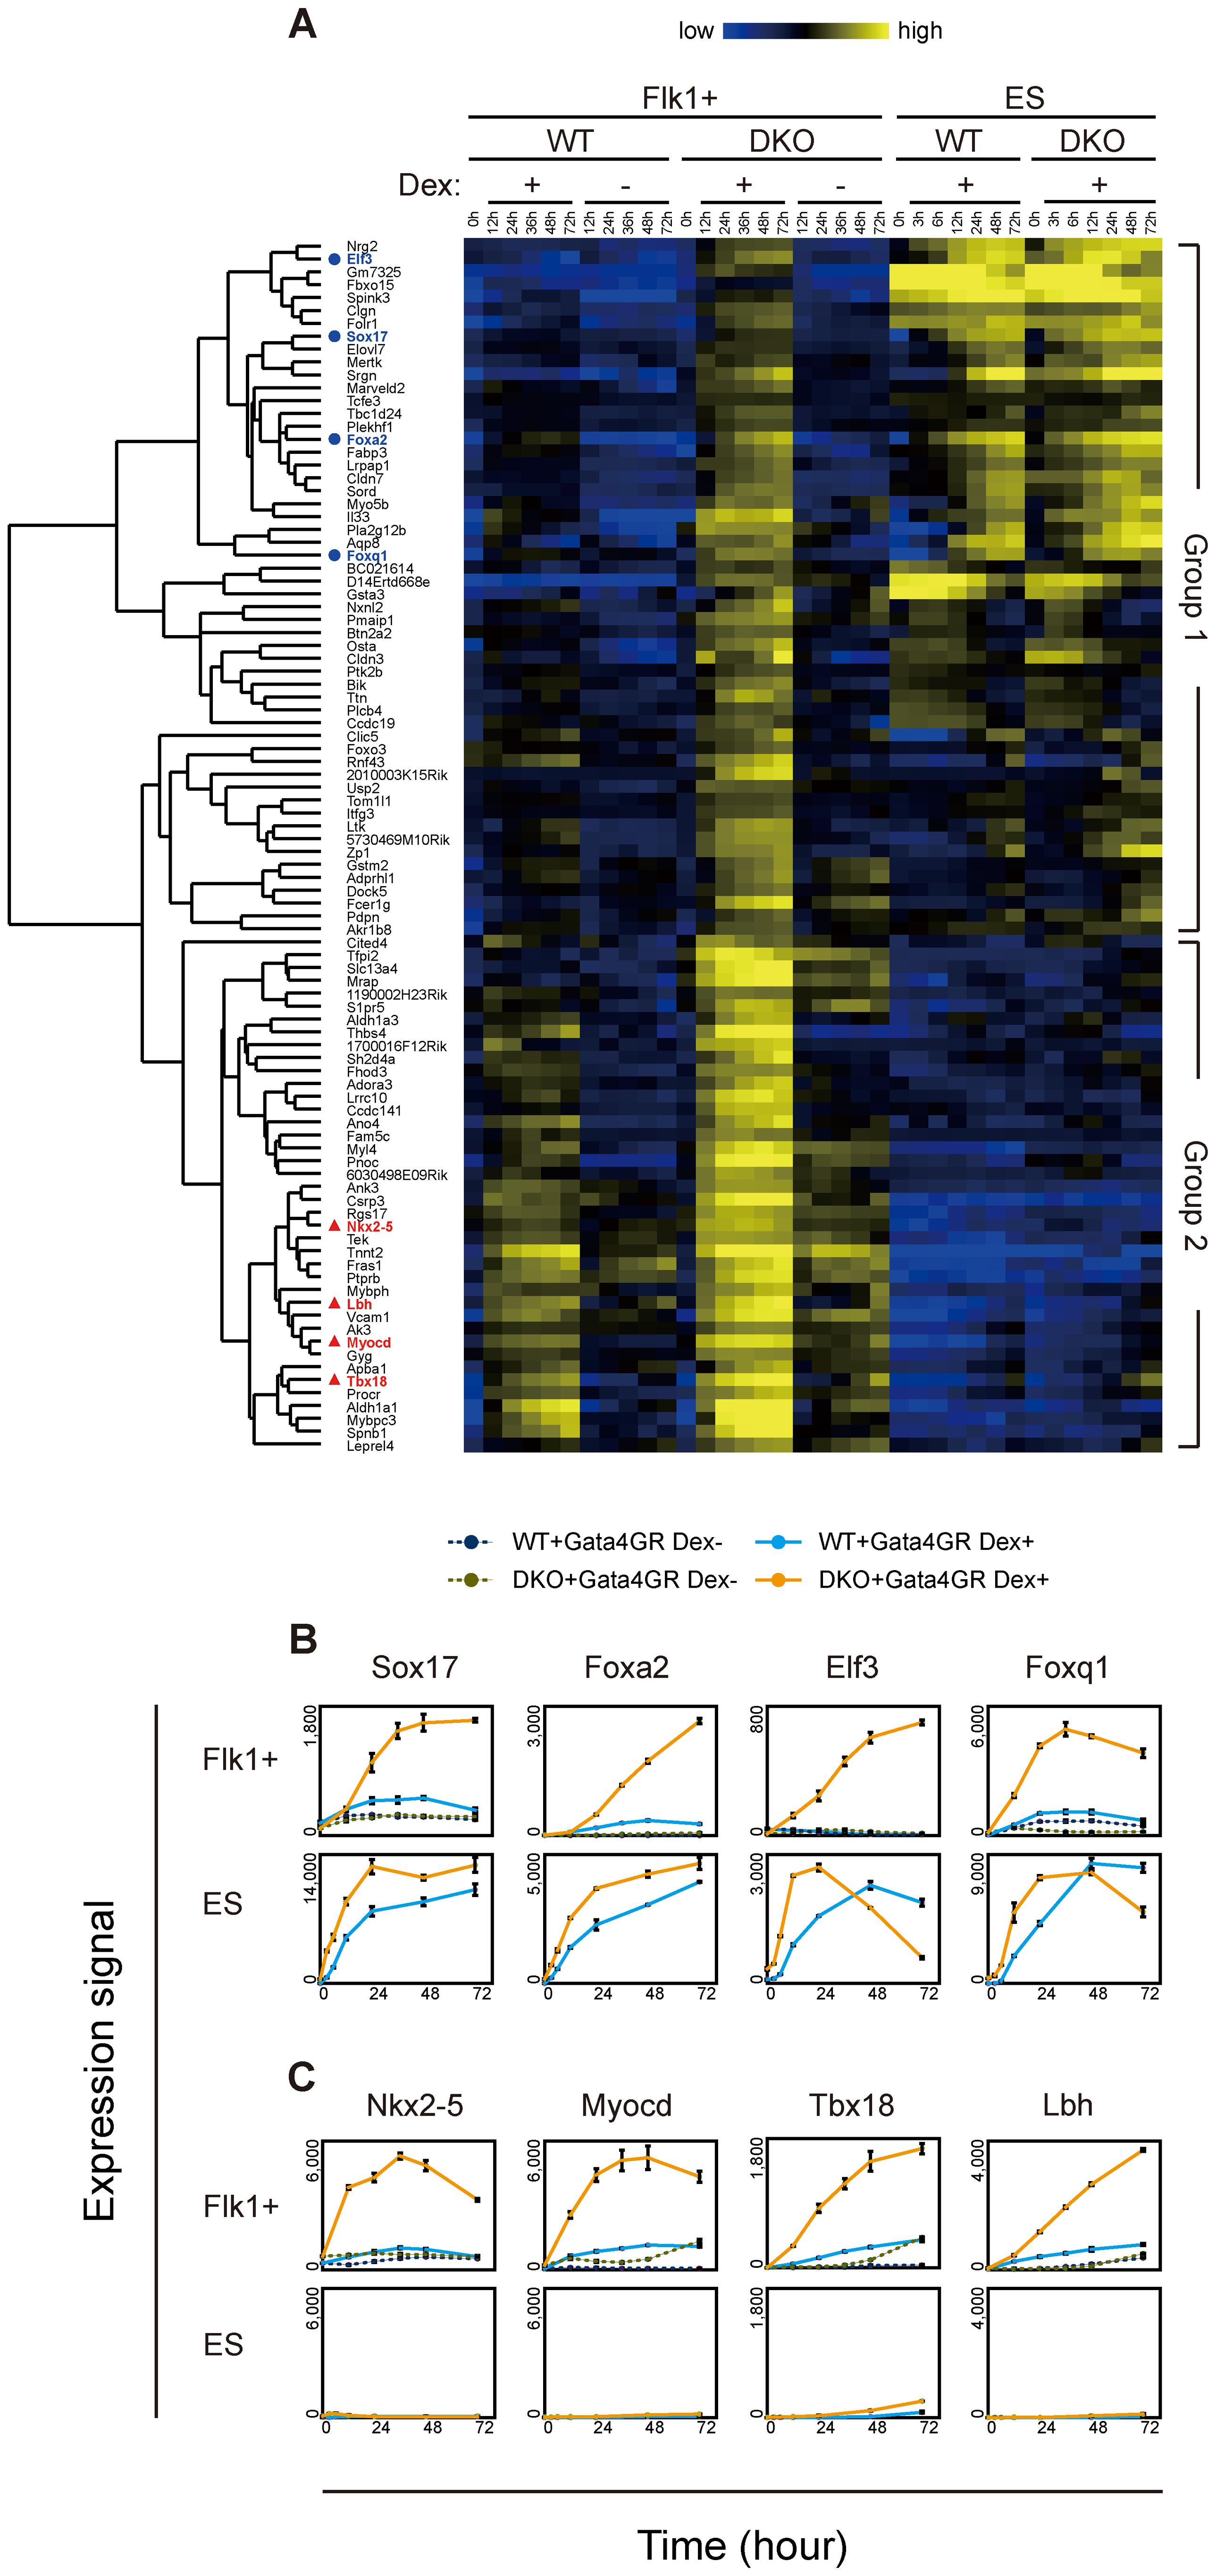 Time course analysis of transcriptome changes in response to Gata4.